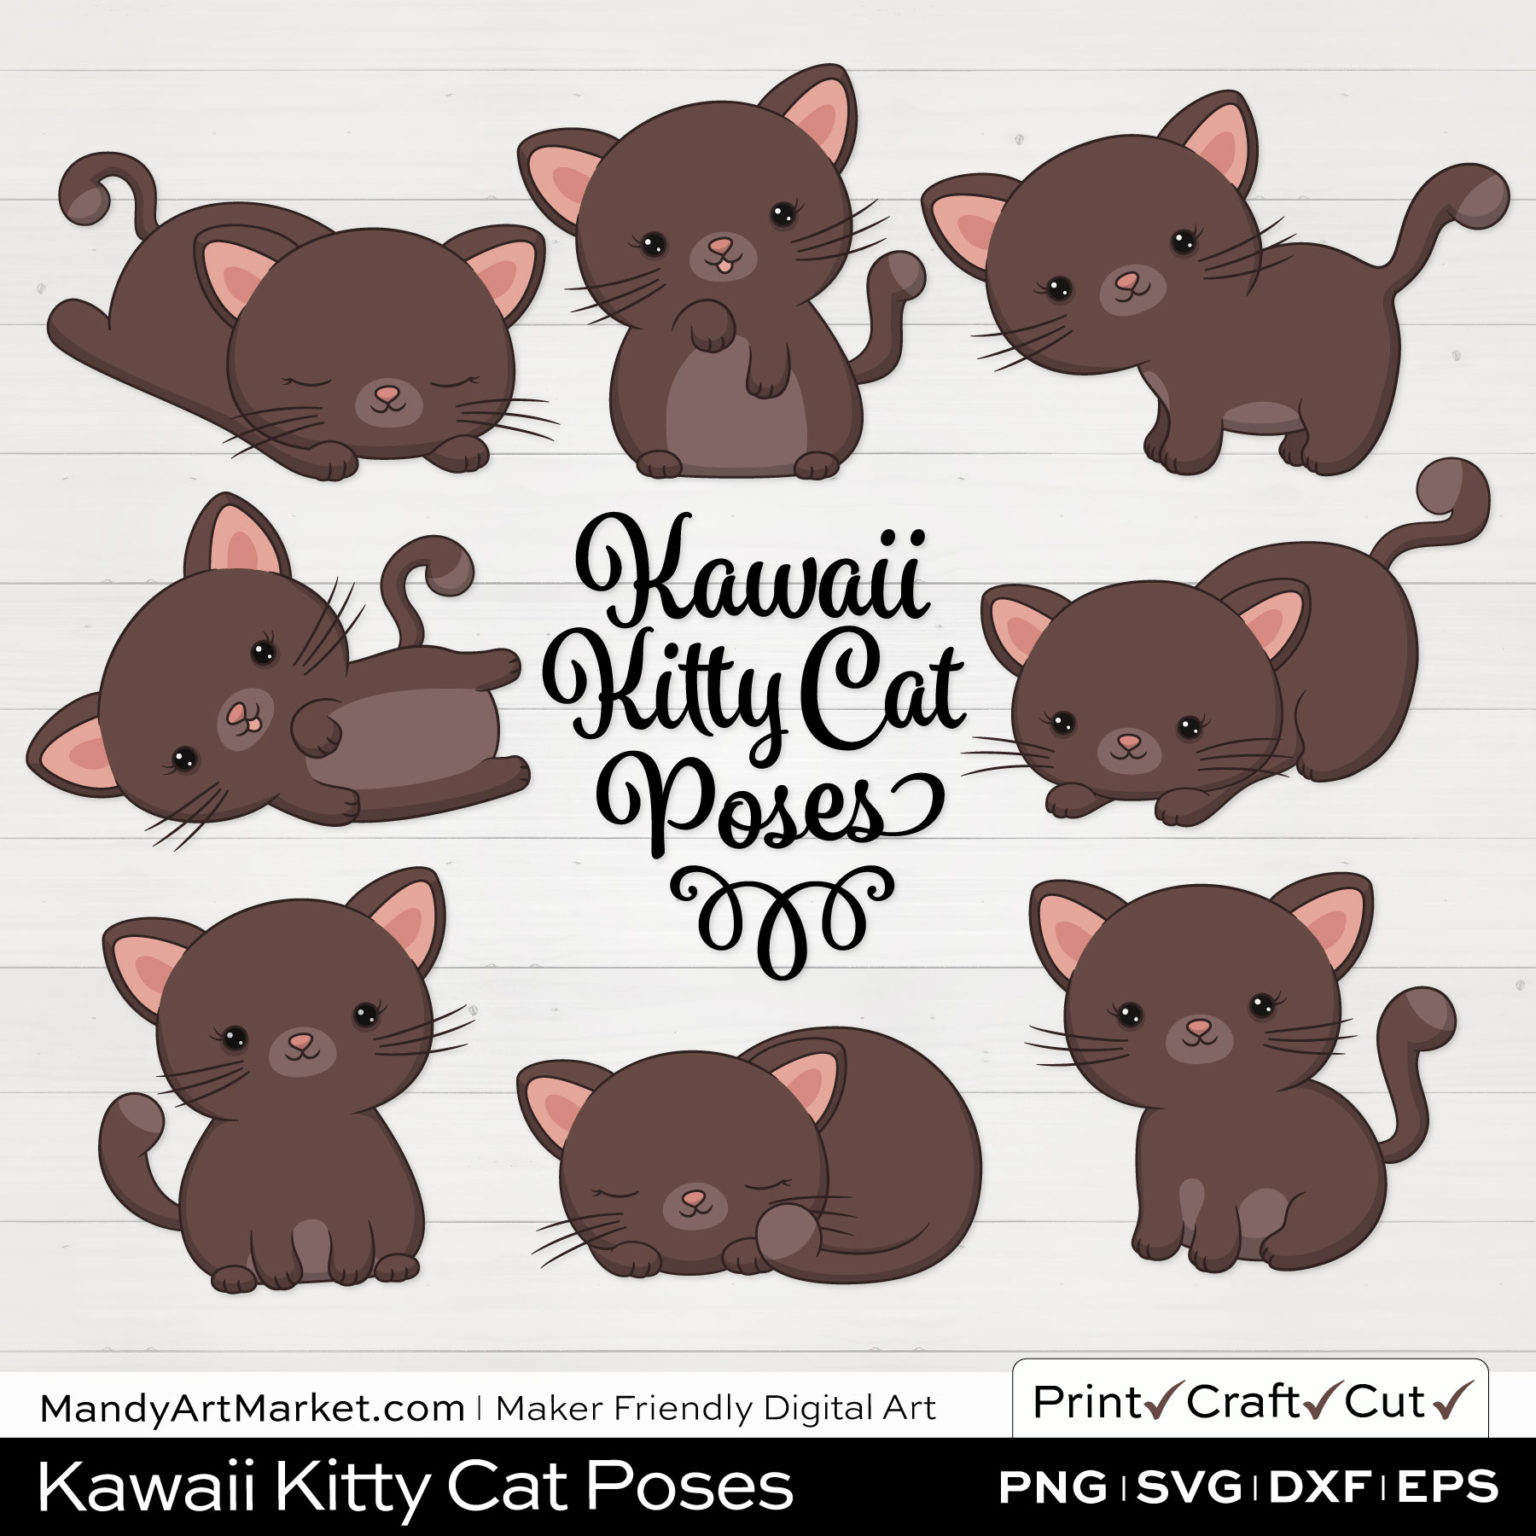 Cocoa Brown Kawaii Kitty Cat Poses Clipart on White Background